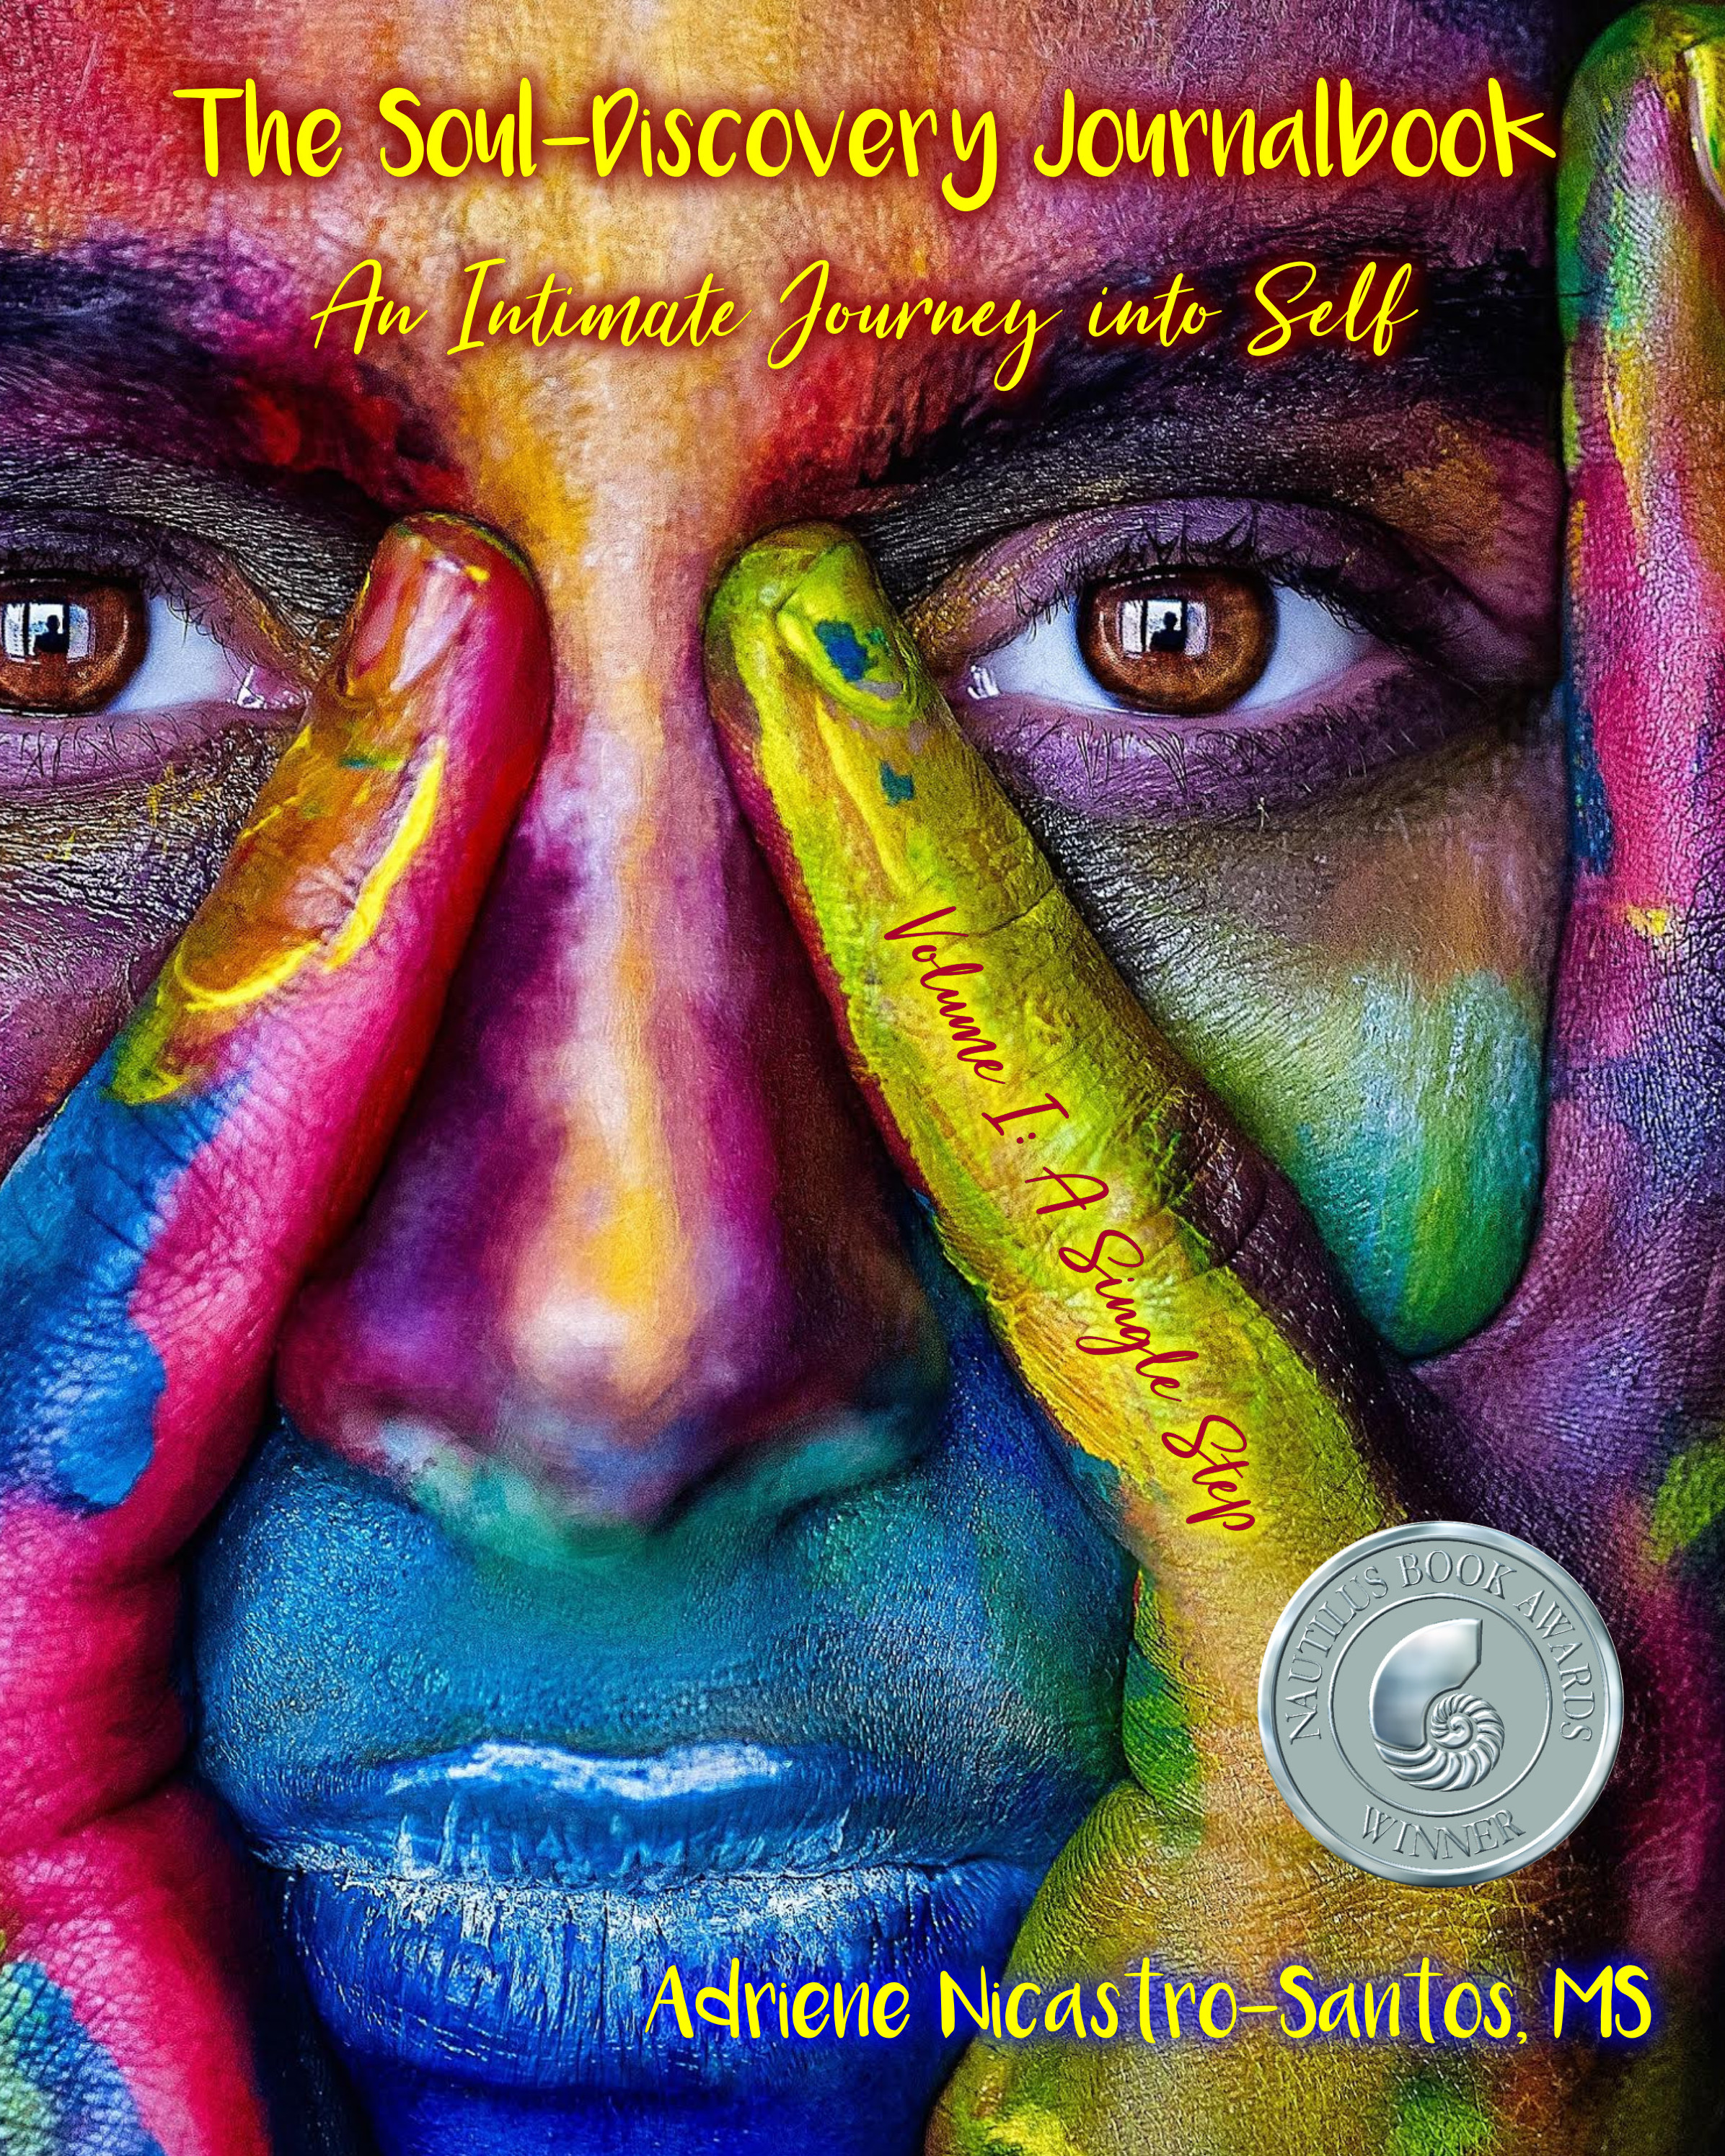 The Soul - Discovery Journal Book